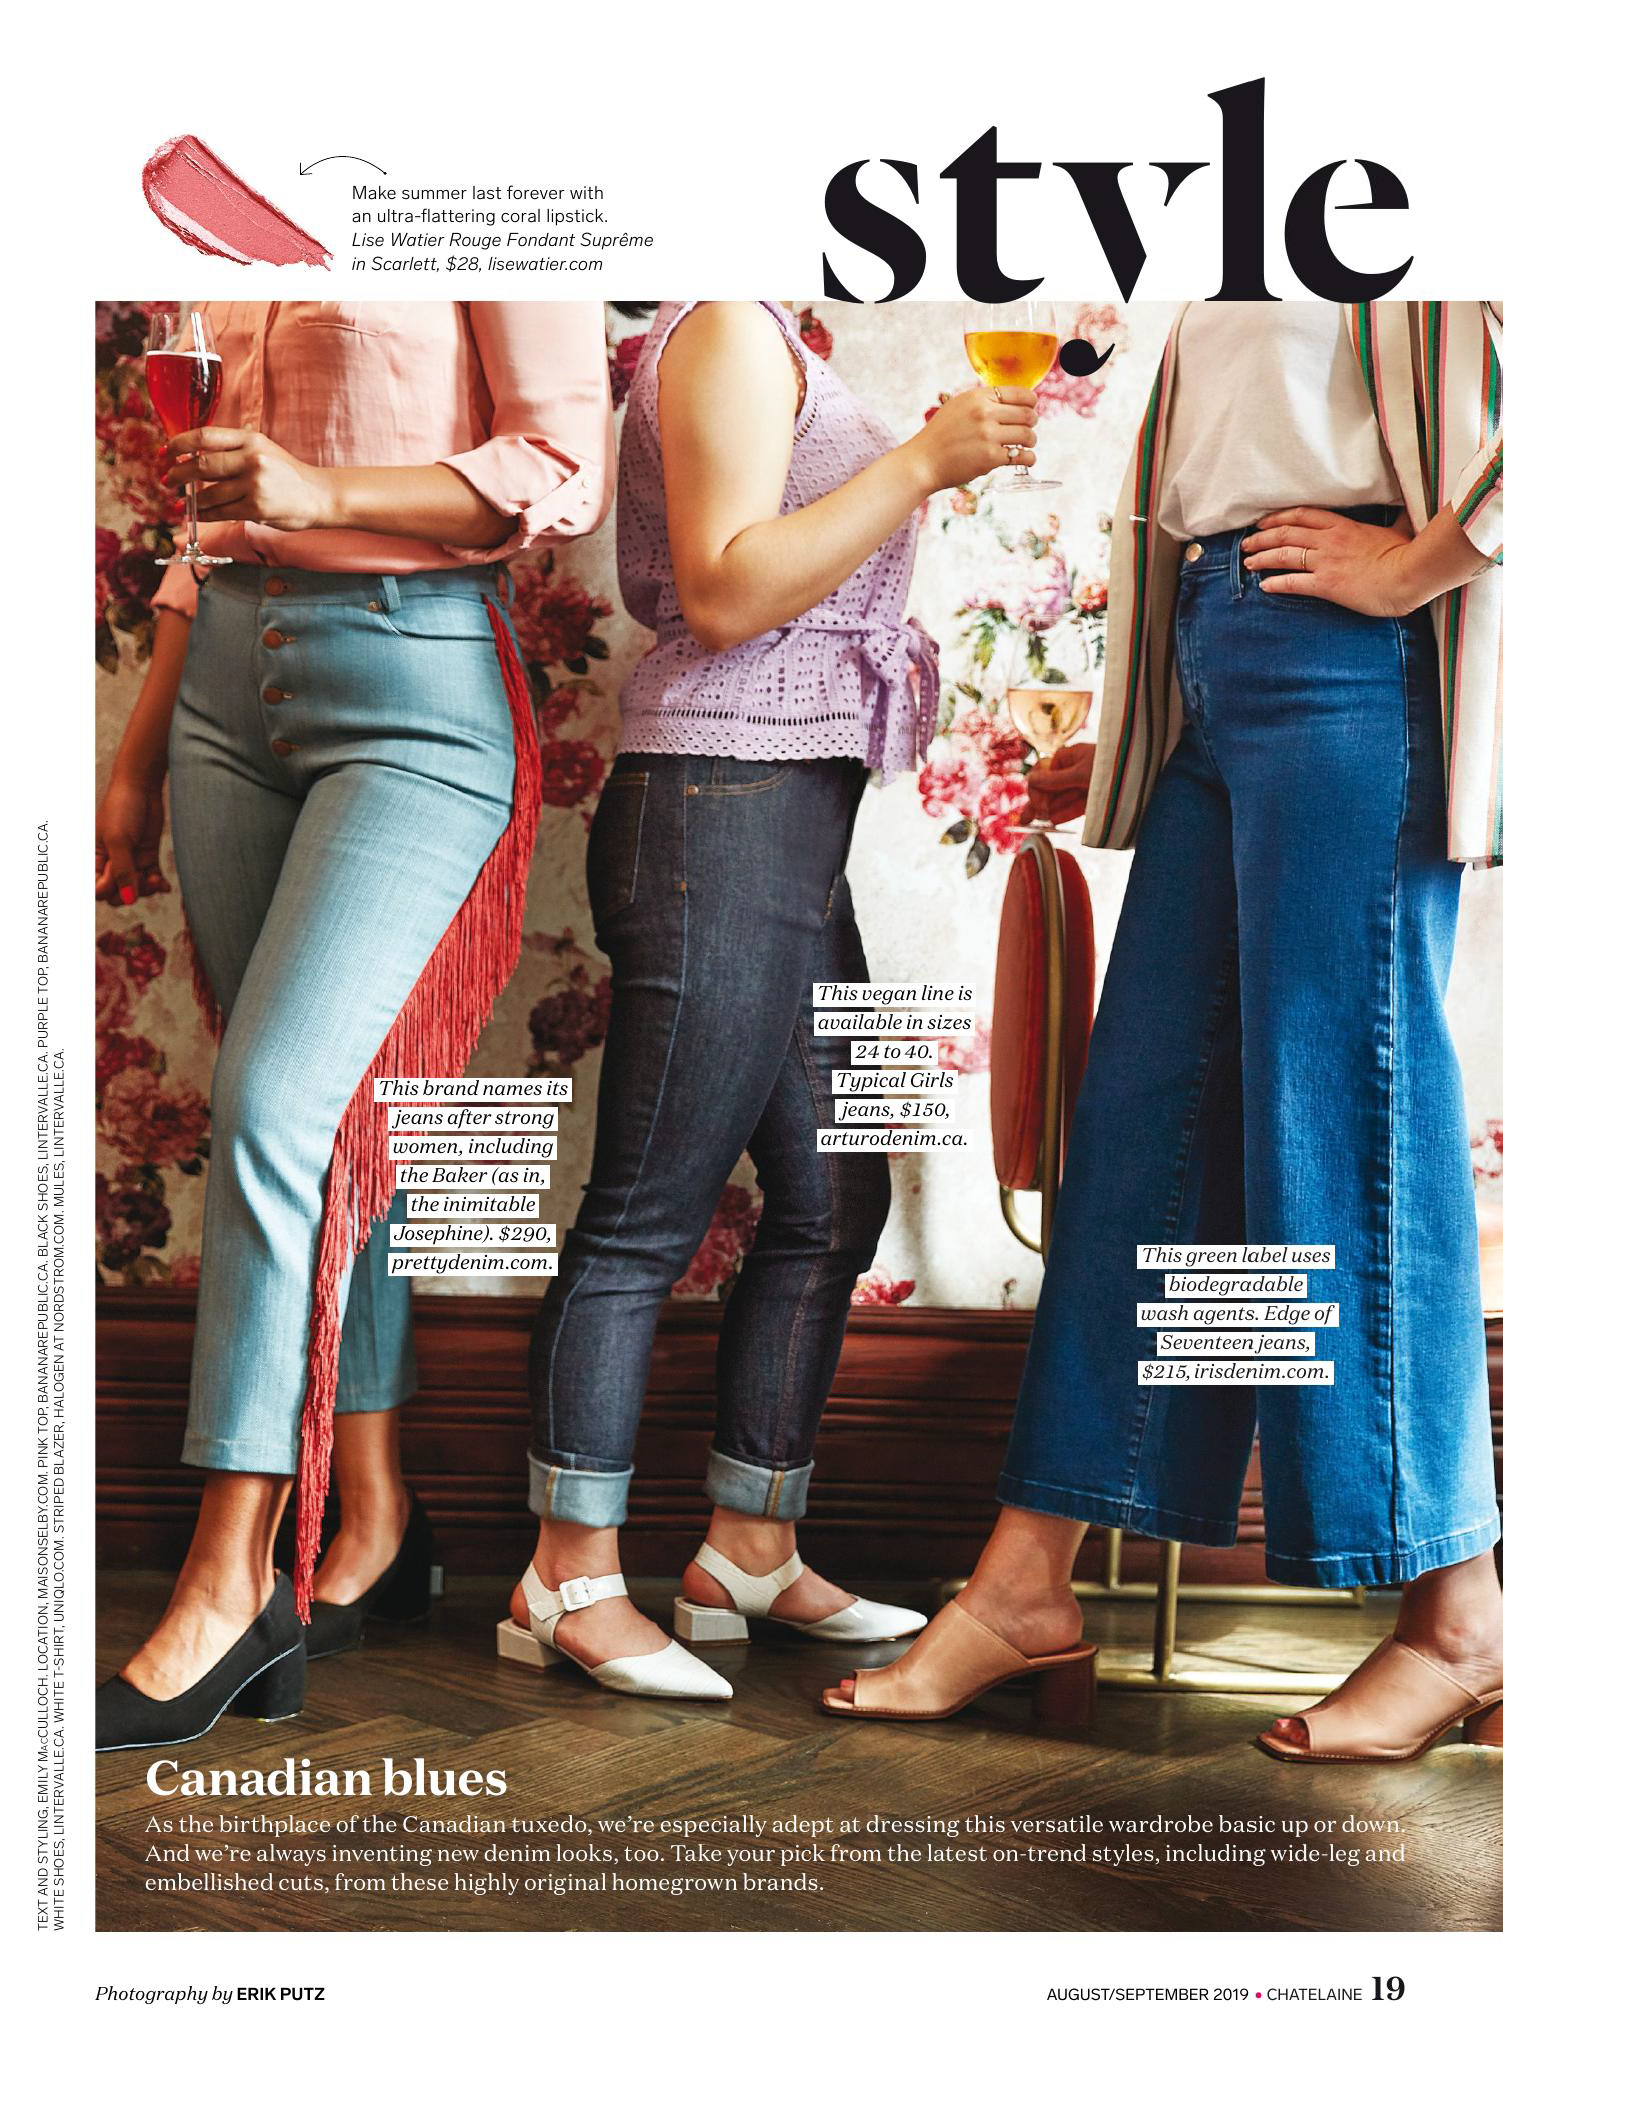 Canadian Blues - As the birthplace of the Canadian tuxedo, we're especially adept at dressing this versatile wardrobe up or down. And we're always inventing new denim looks, too. Take your pick from the latest on-trend styles, including wide-leg and embellished cuts, from these original homegrown brands.